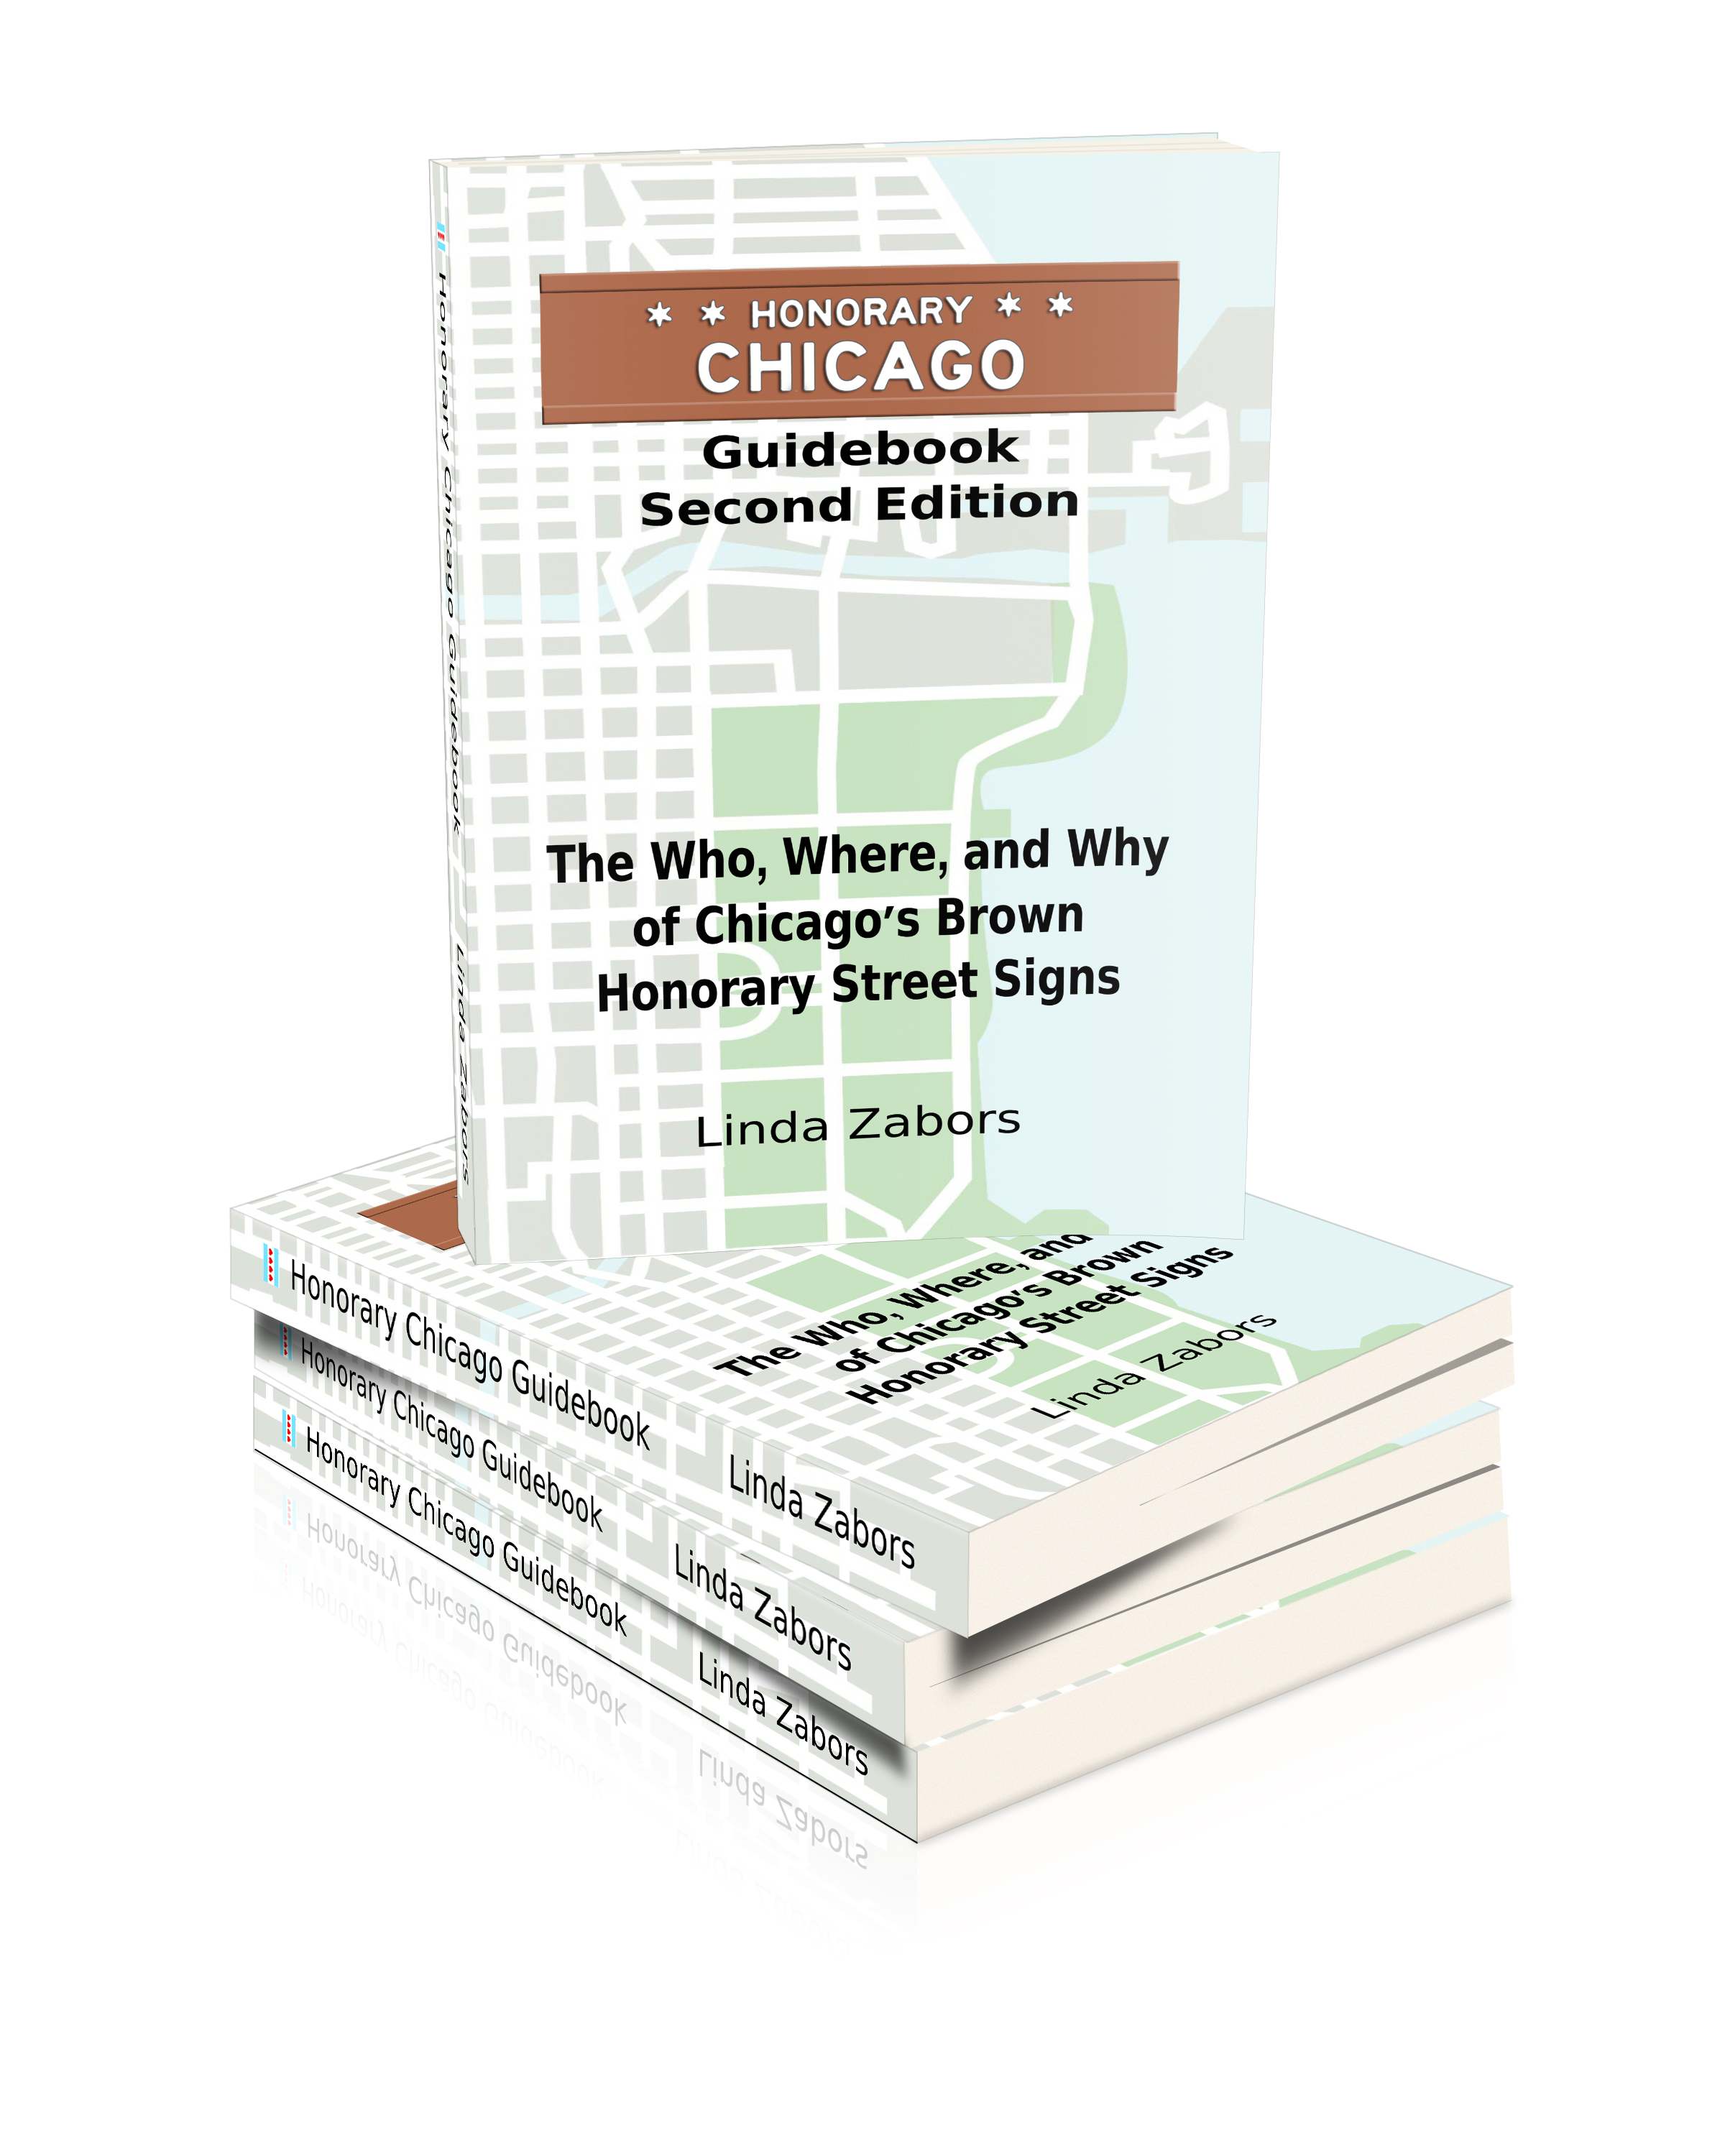 Honorary Chicago Guidebook - Now Available!